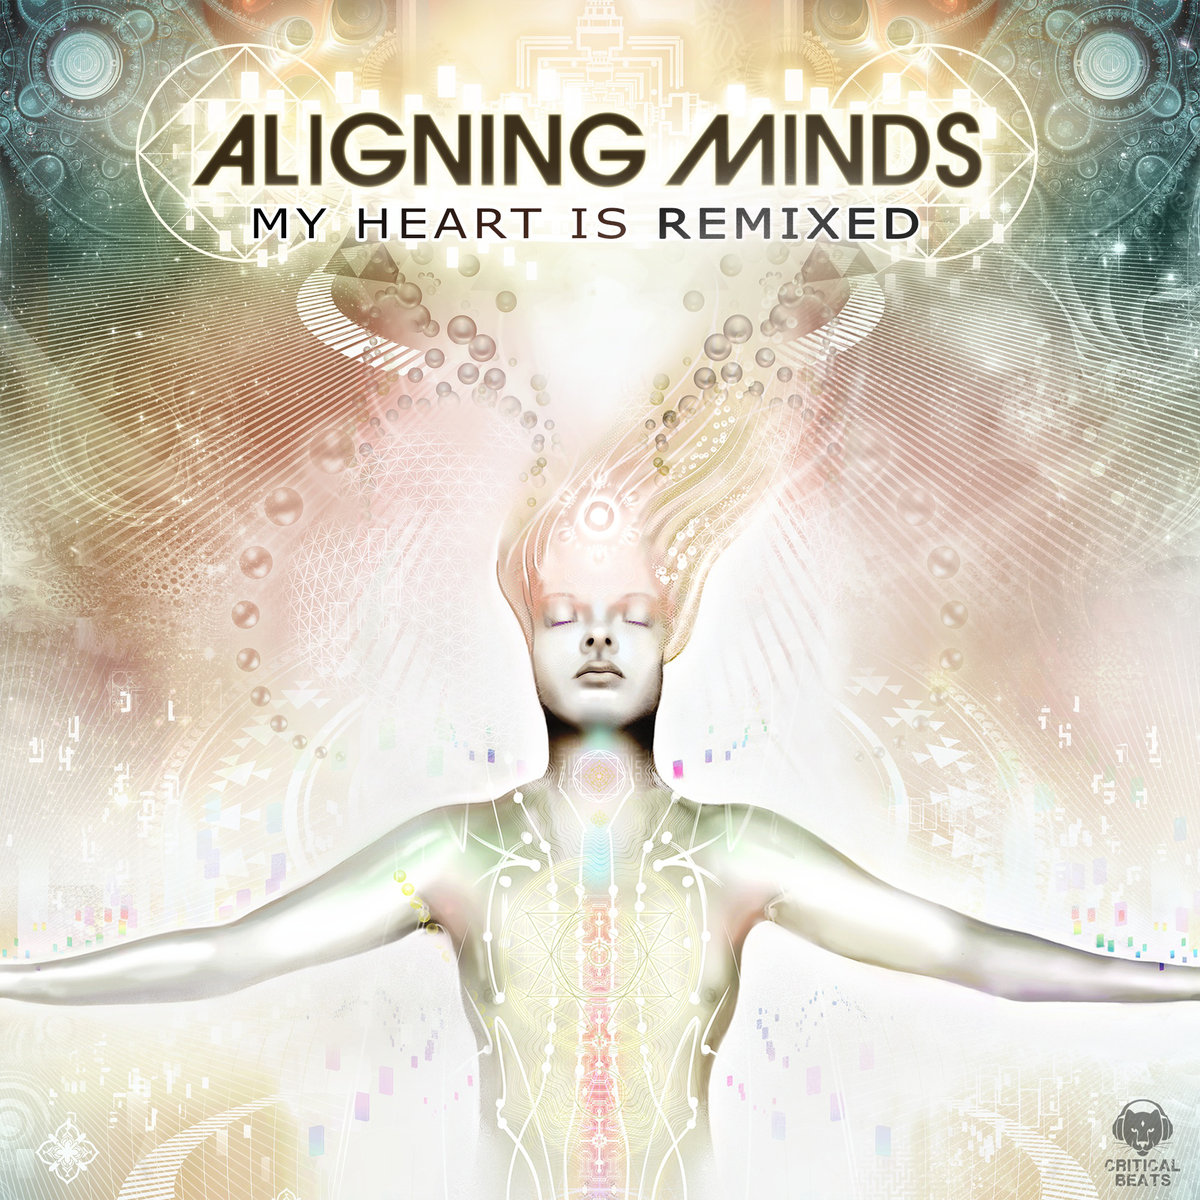 Aligning Minds - In the Wake of Forever (Subaqueous Remix) @ 'My Heart Is Remixed' album (asheville, baltimore)